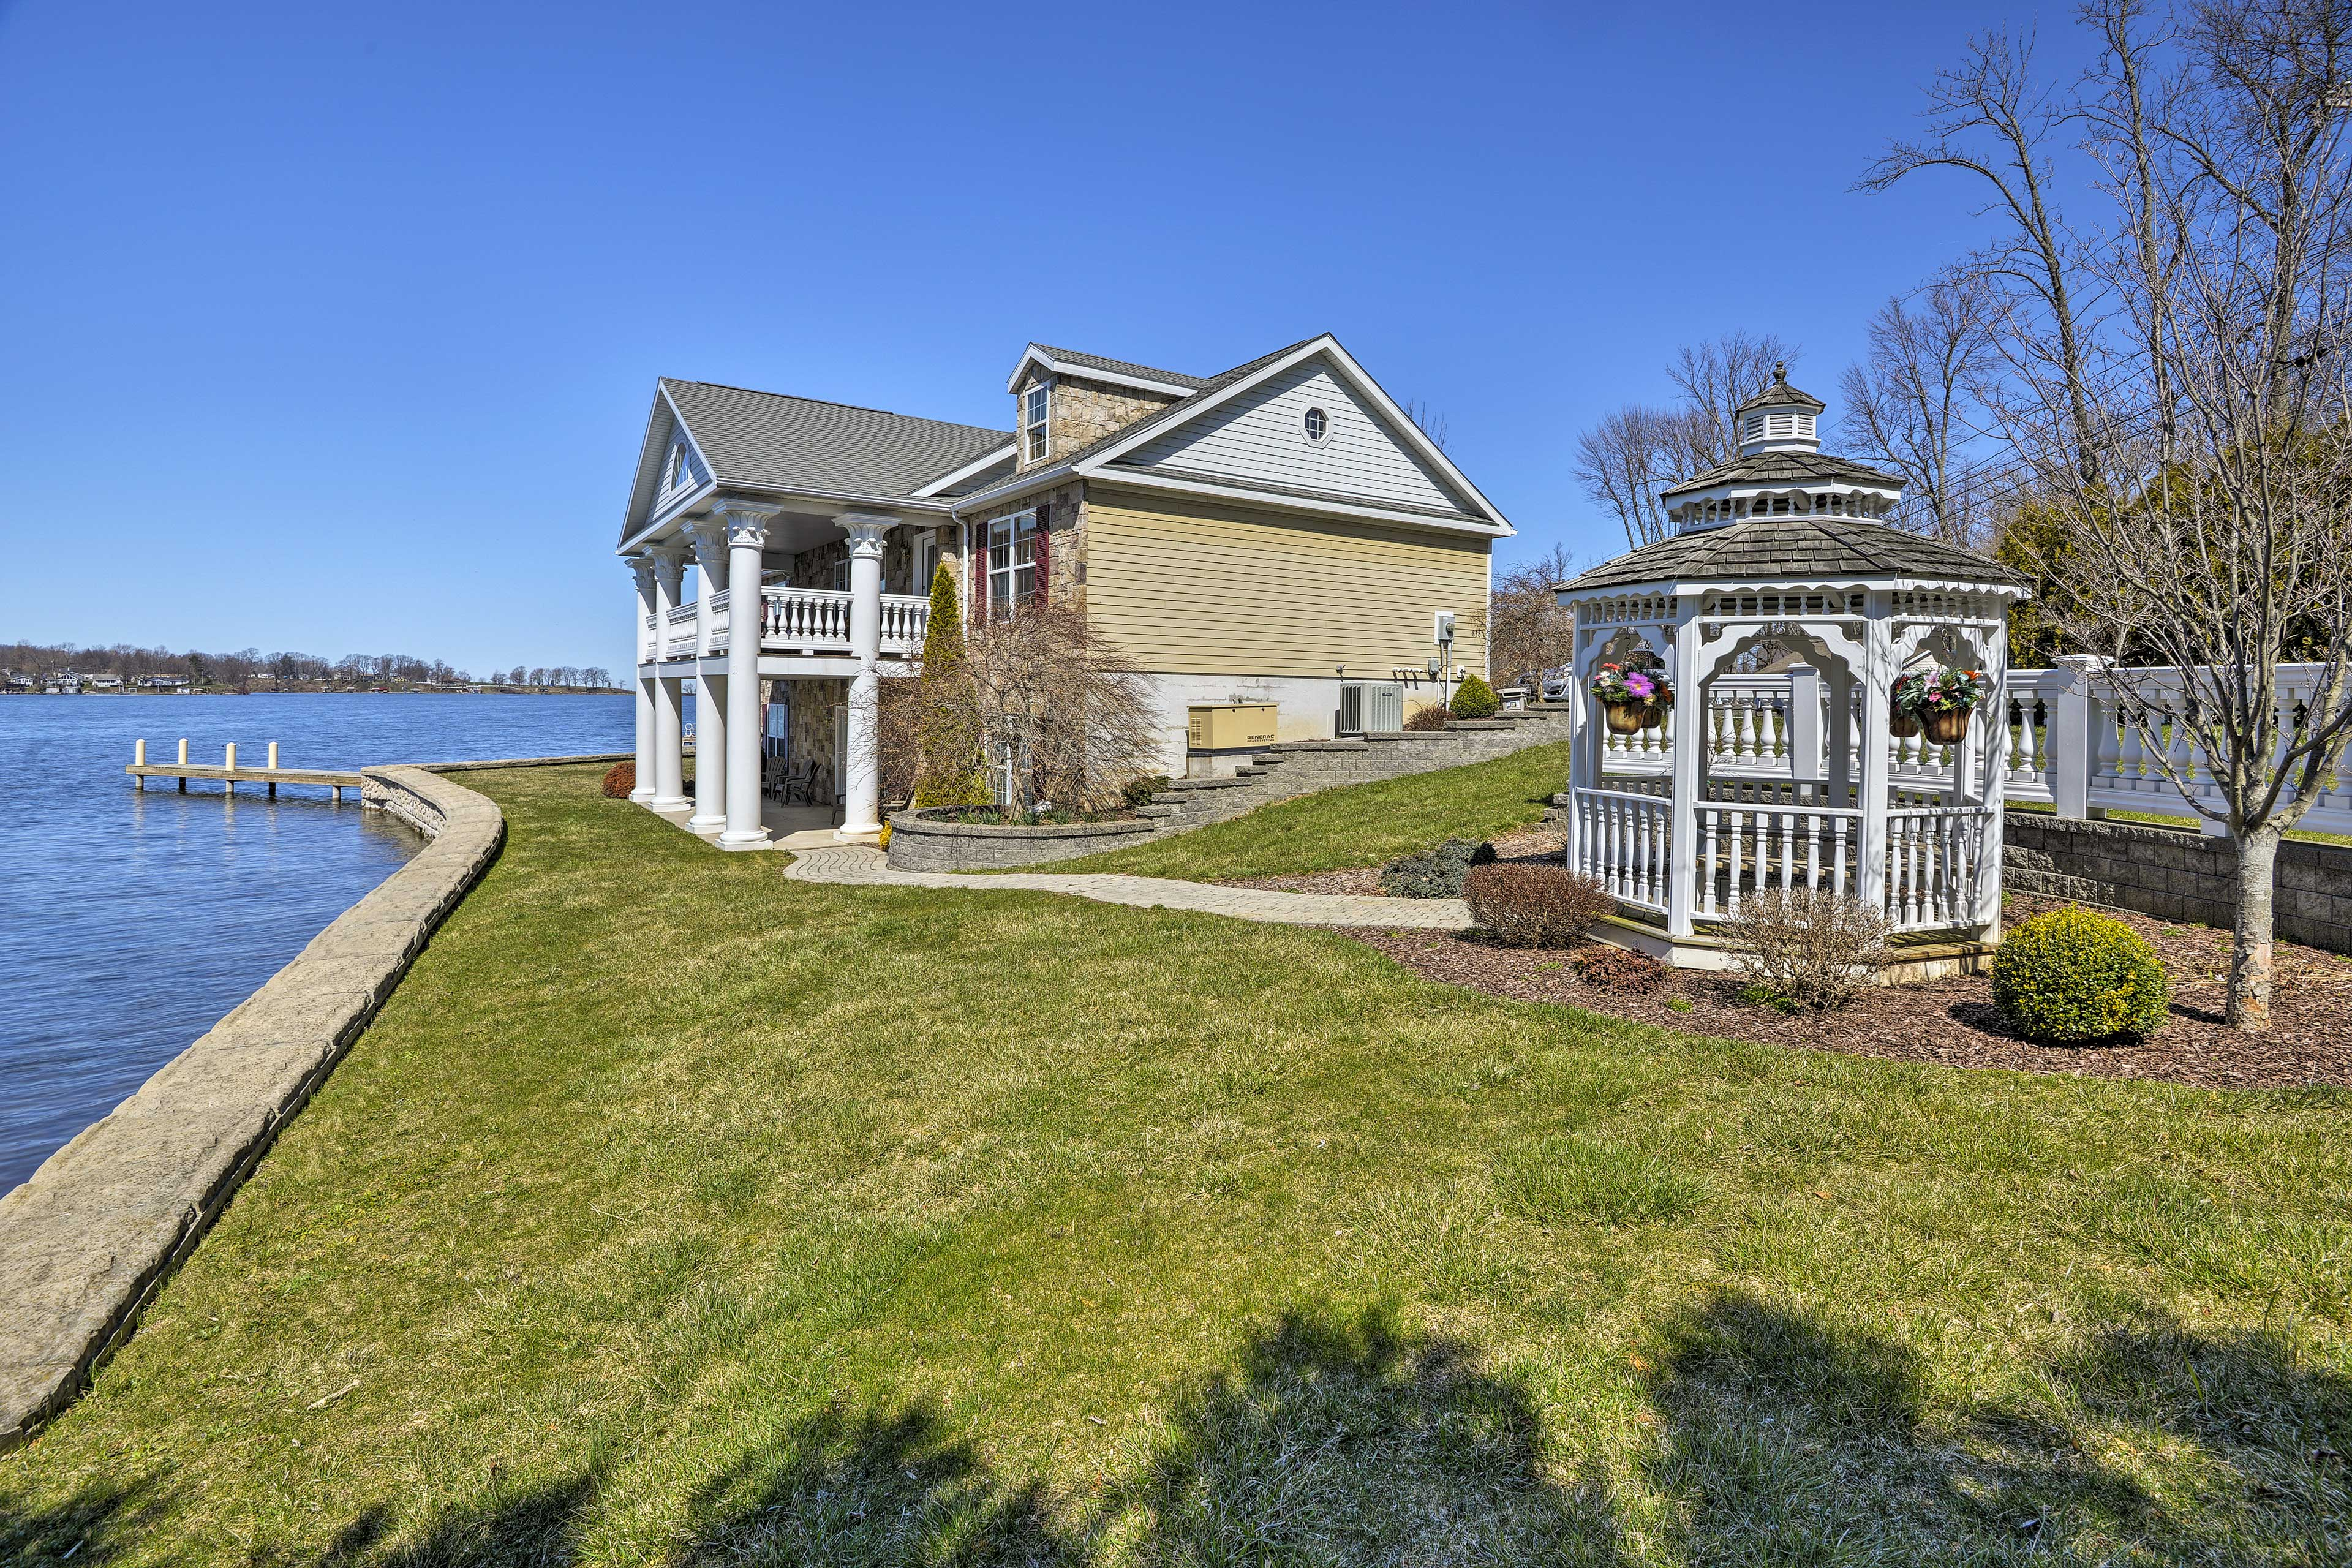 The home features 153 feet of waterfront property.